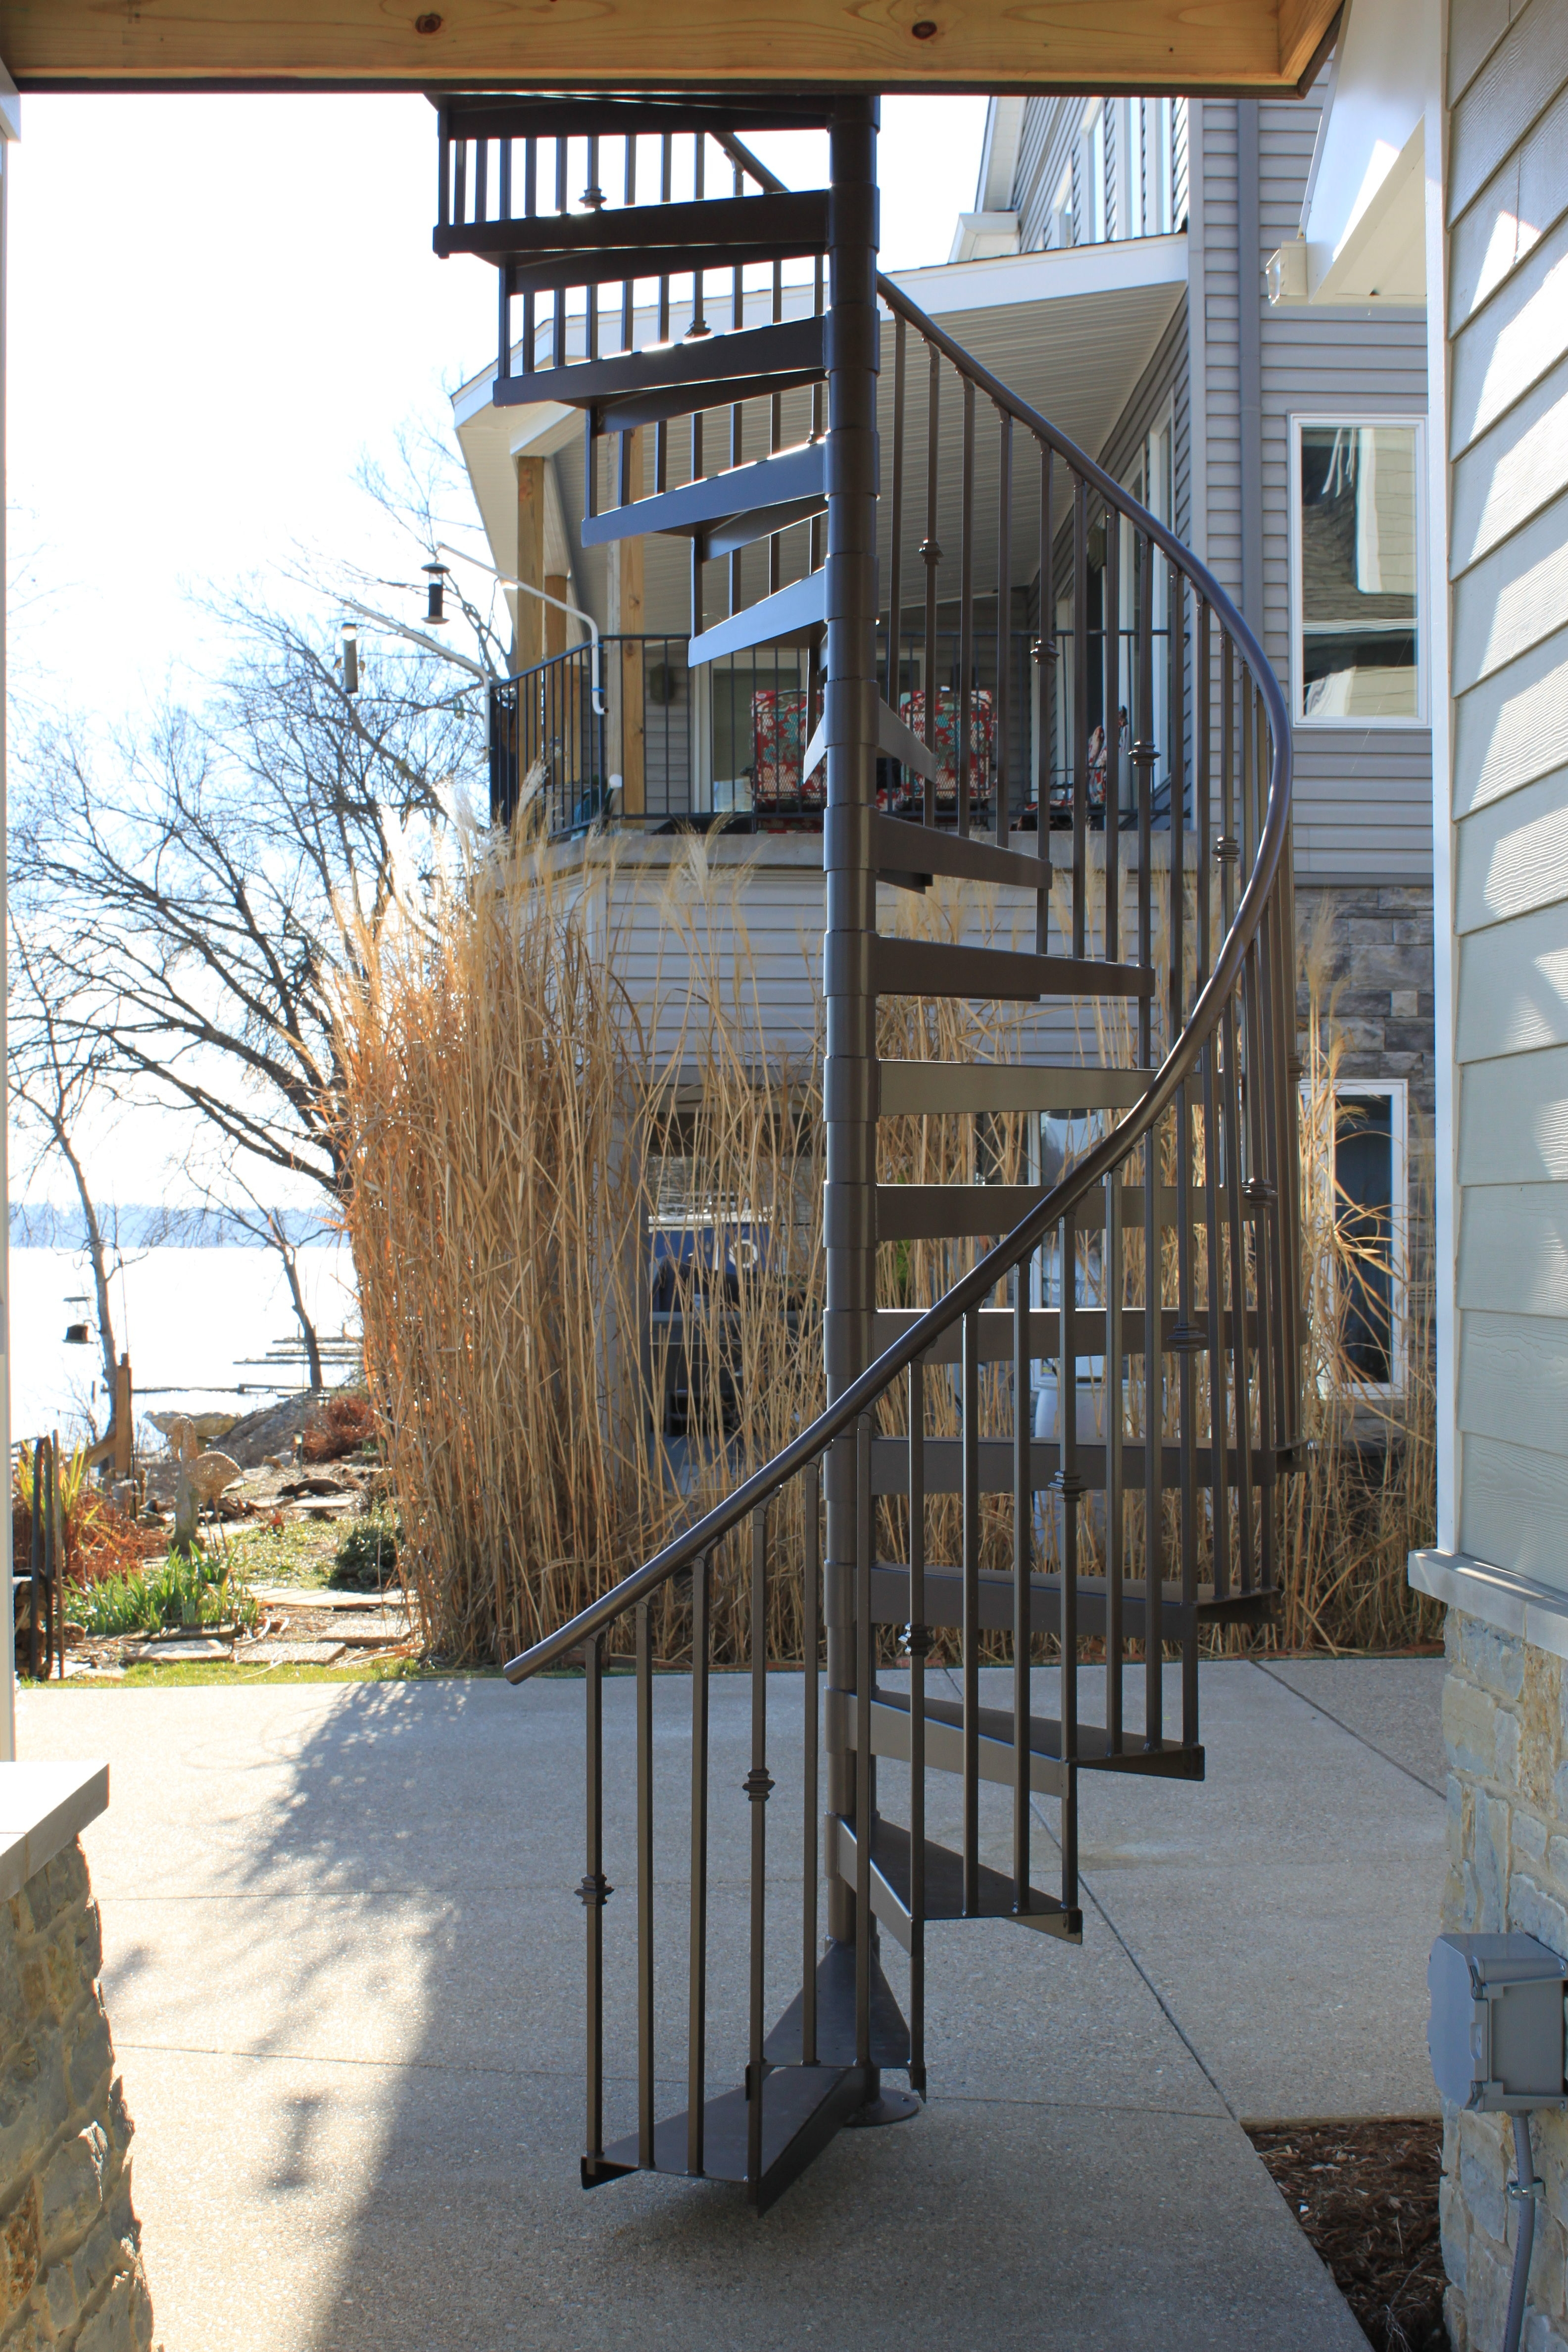 Spiral Staircases Heck S Metal Works | Exterior Metal Spiral Staircase | Interior | Outdoor | Free Standing | Custom Exterior | Model